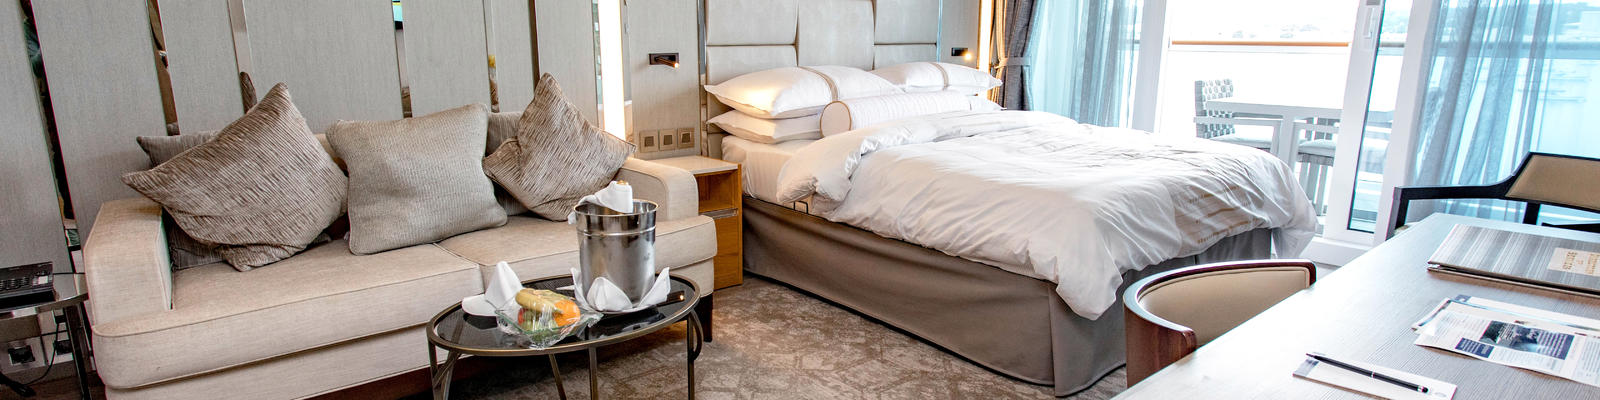 What To Expect On A Cruise Cruise Rooms Cruise Critic Extraordinary Luxor One Bedroom Luxury Suite Ideas Design